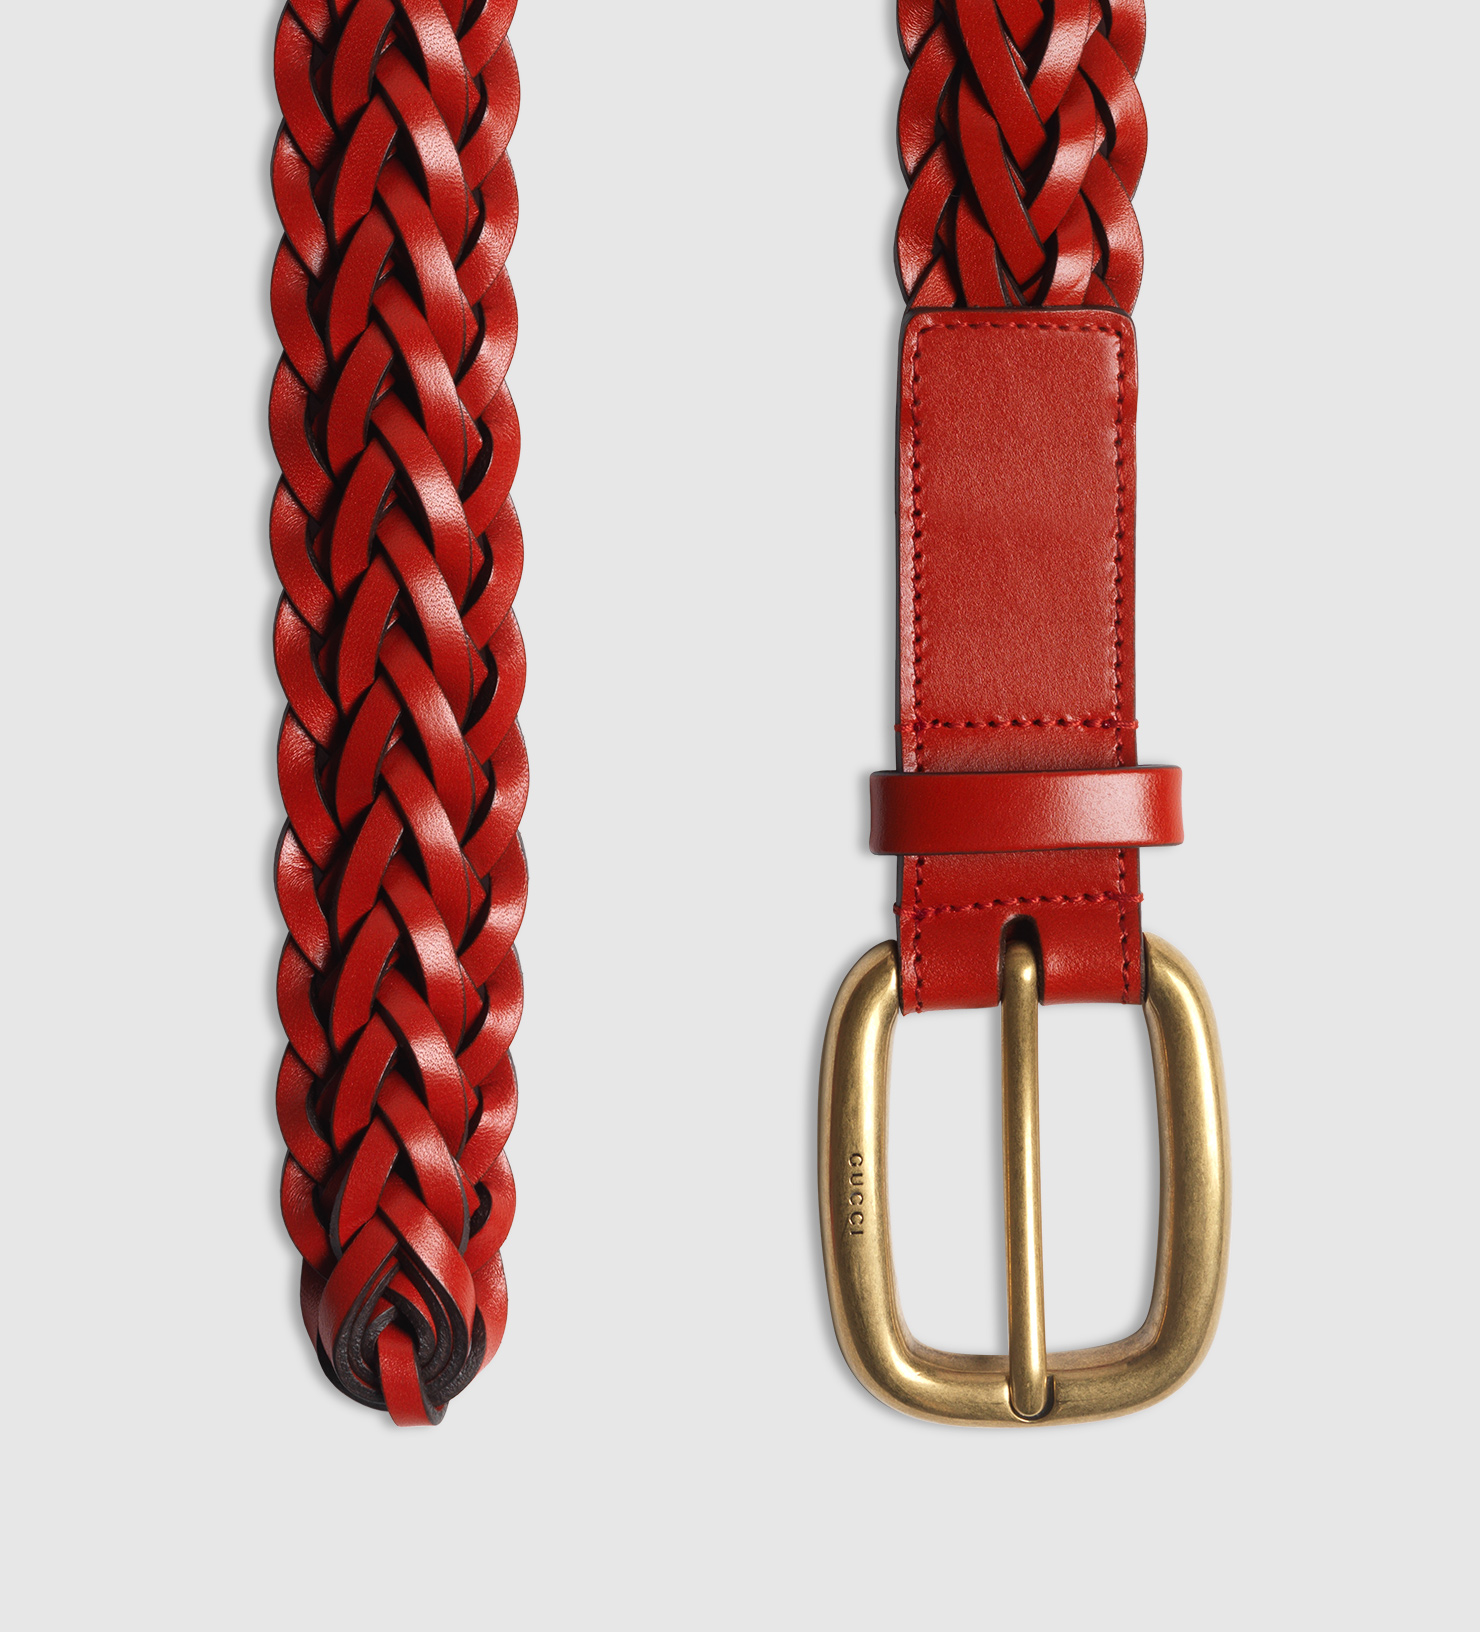 41e84a4b208 Gucci Hand-braided Leather Belt in Red - Lyst